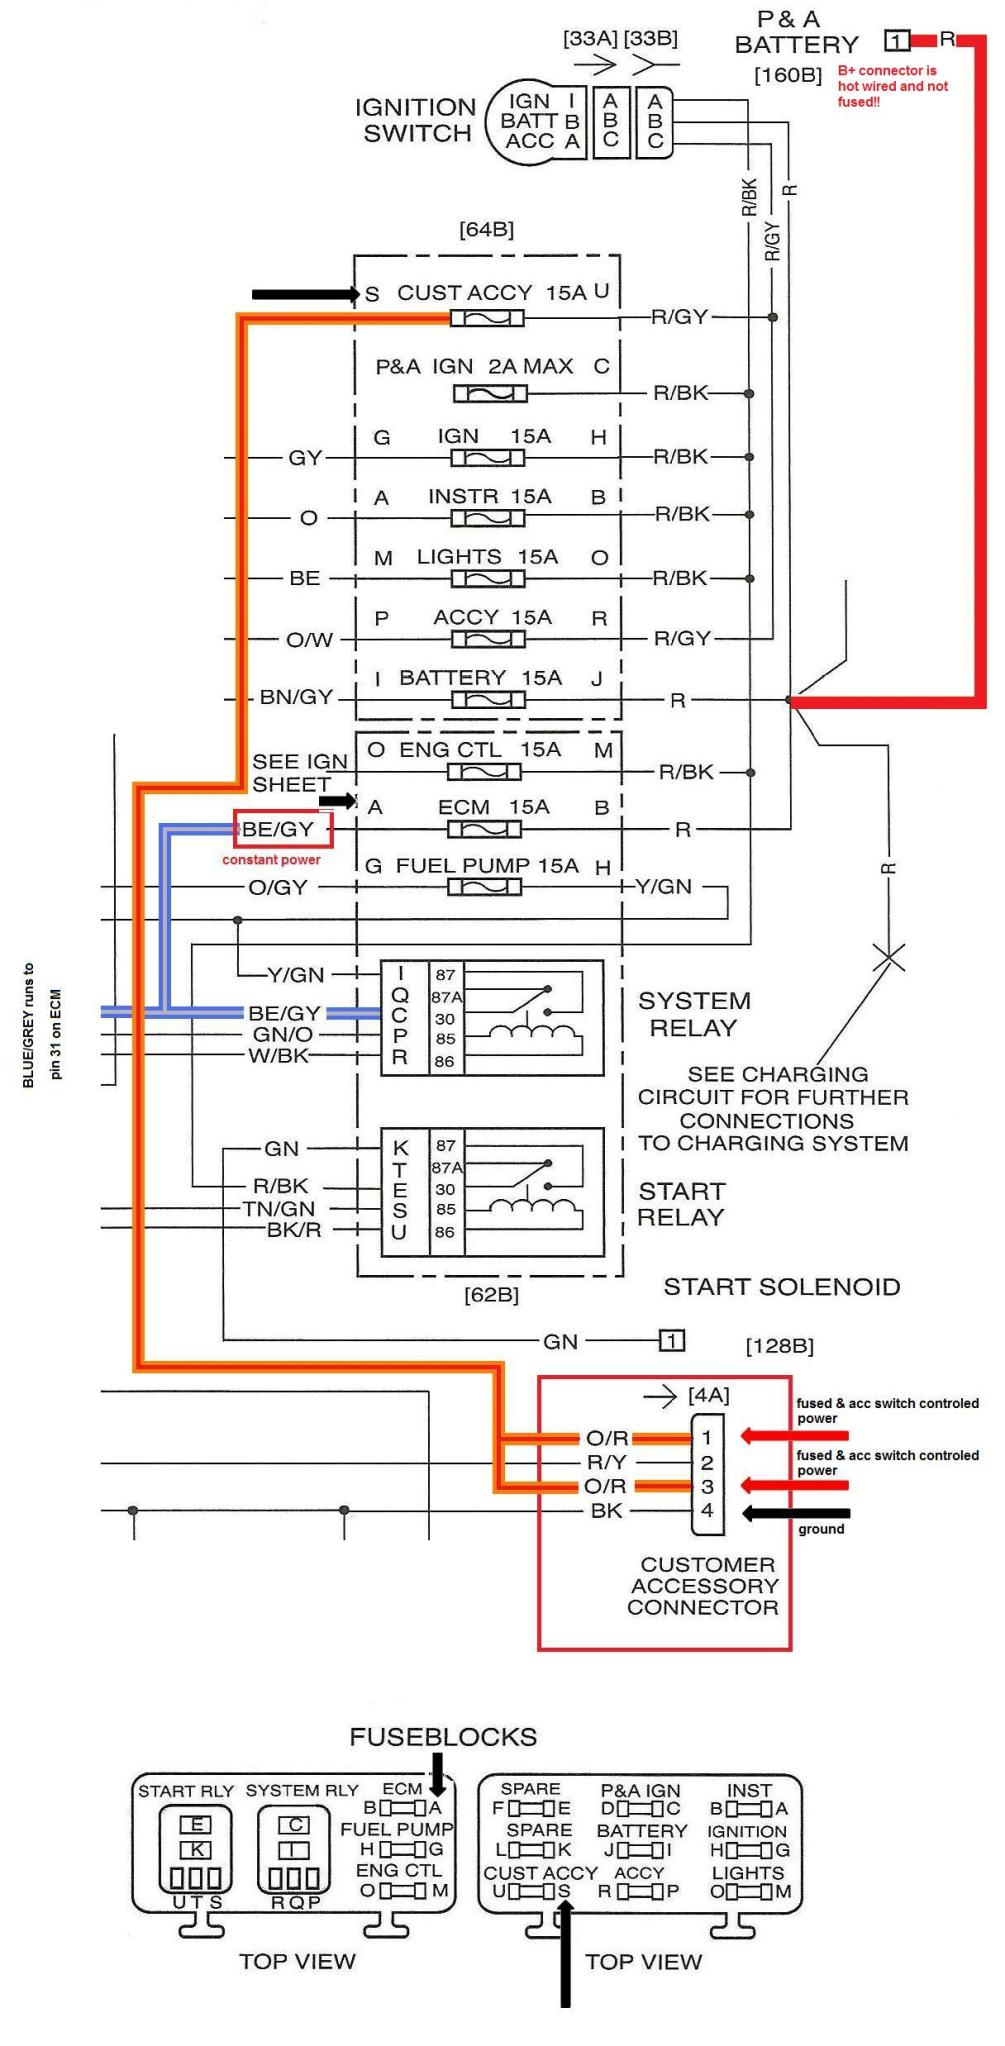 hight resolution of 2015 harley wiring diagram real wiring diagram u2022 rh mcmxliv co 1995 flht specs 1995 flht